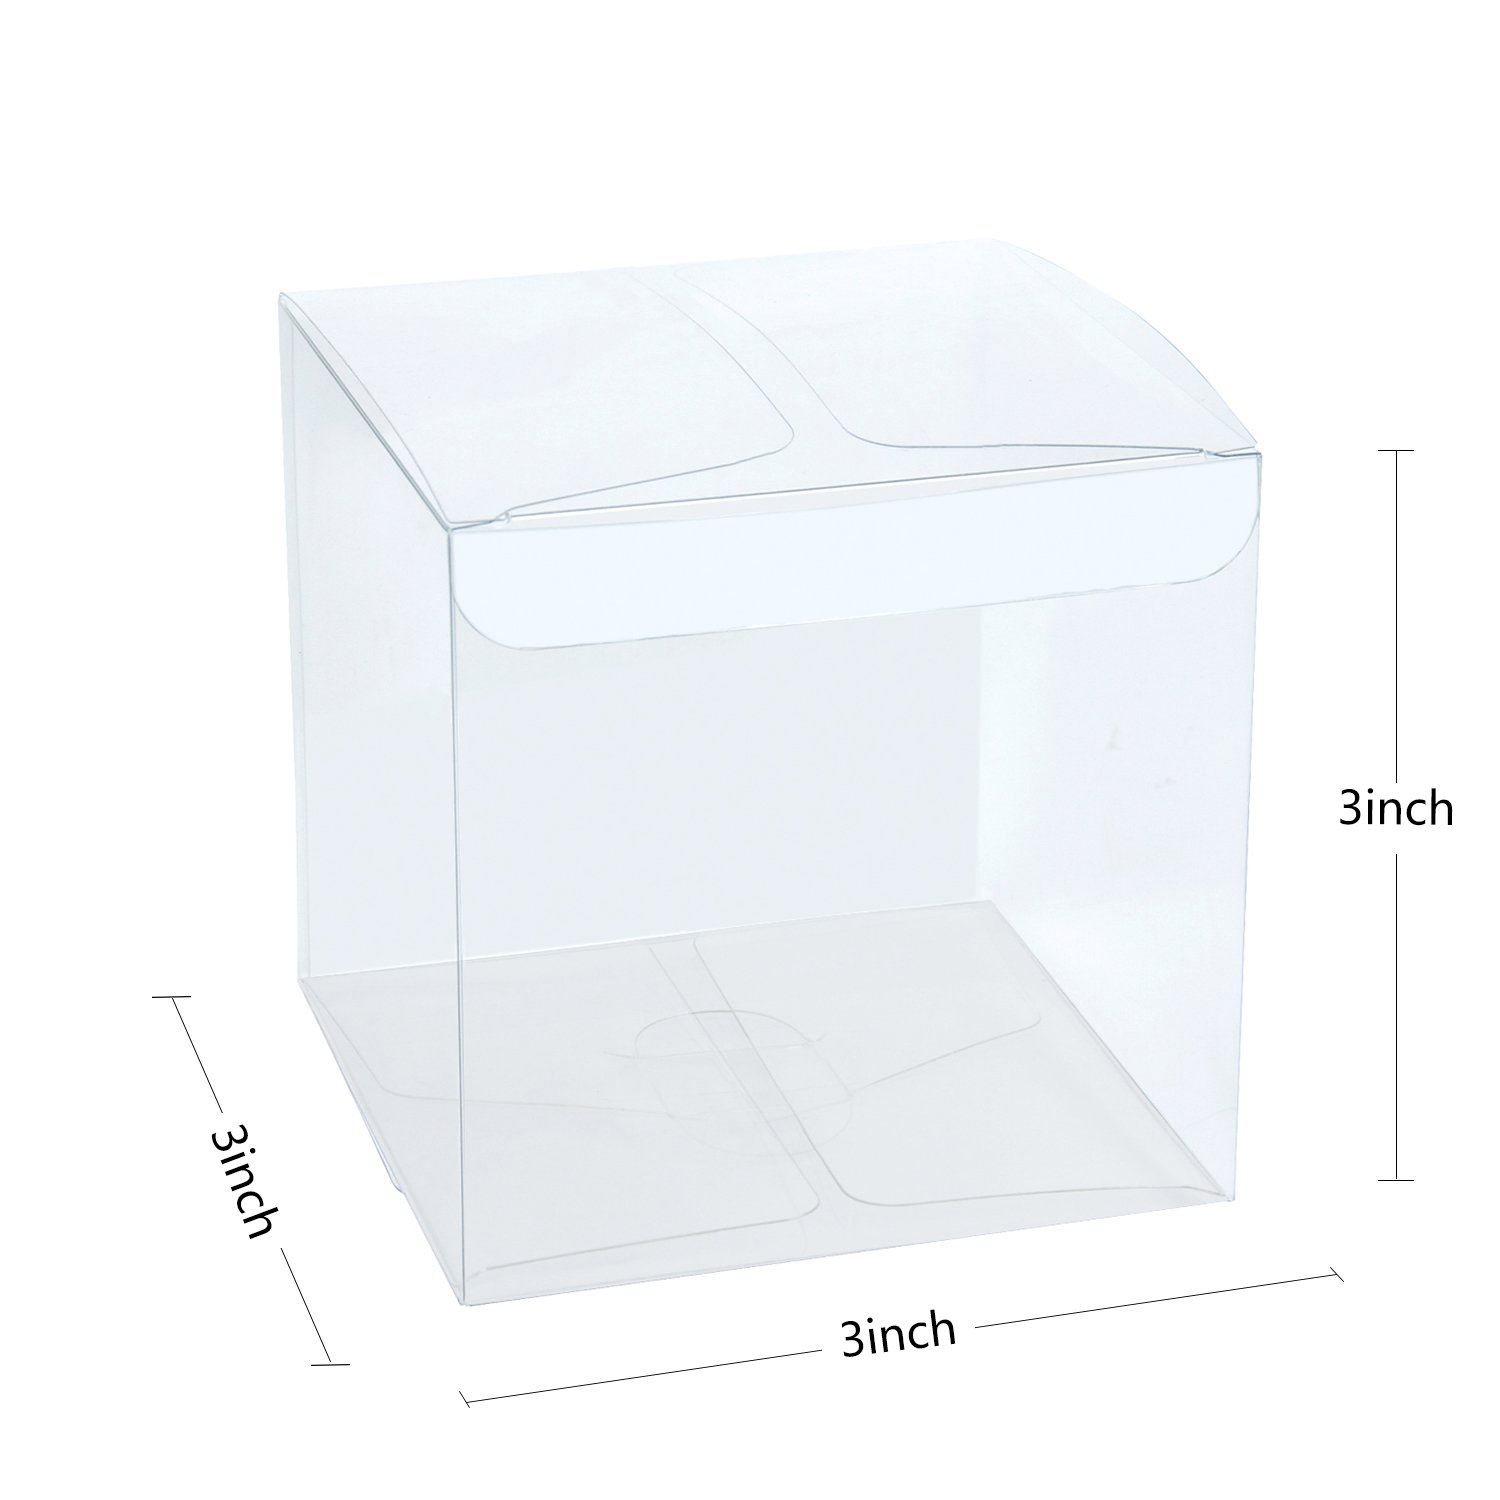 LaRibbons 50Pcs PET Clear Box, Transparent Boxes/Clear Gift Boxes for Wedding, Party and Baby Shower Favors, 3'' L x 3'' W x 3'' H by LaRibbons (Image #2)